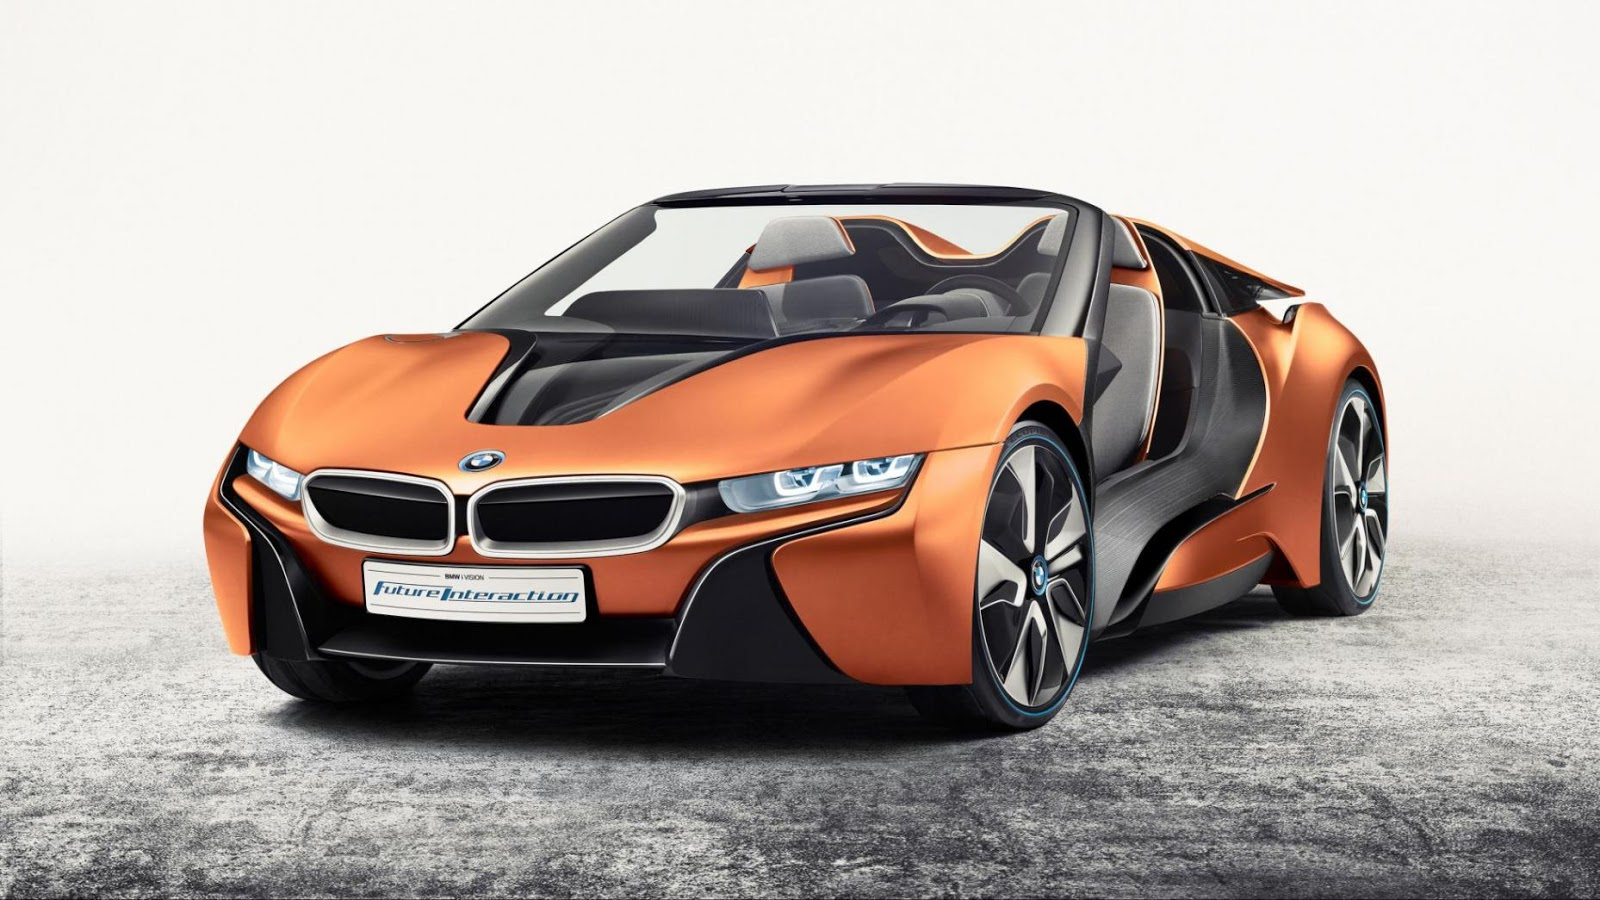 2016: BMW i Vision Future Interaction